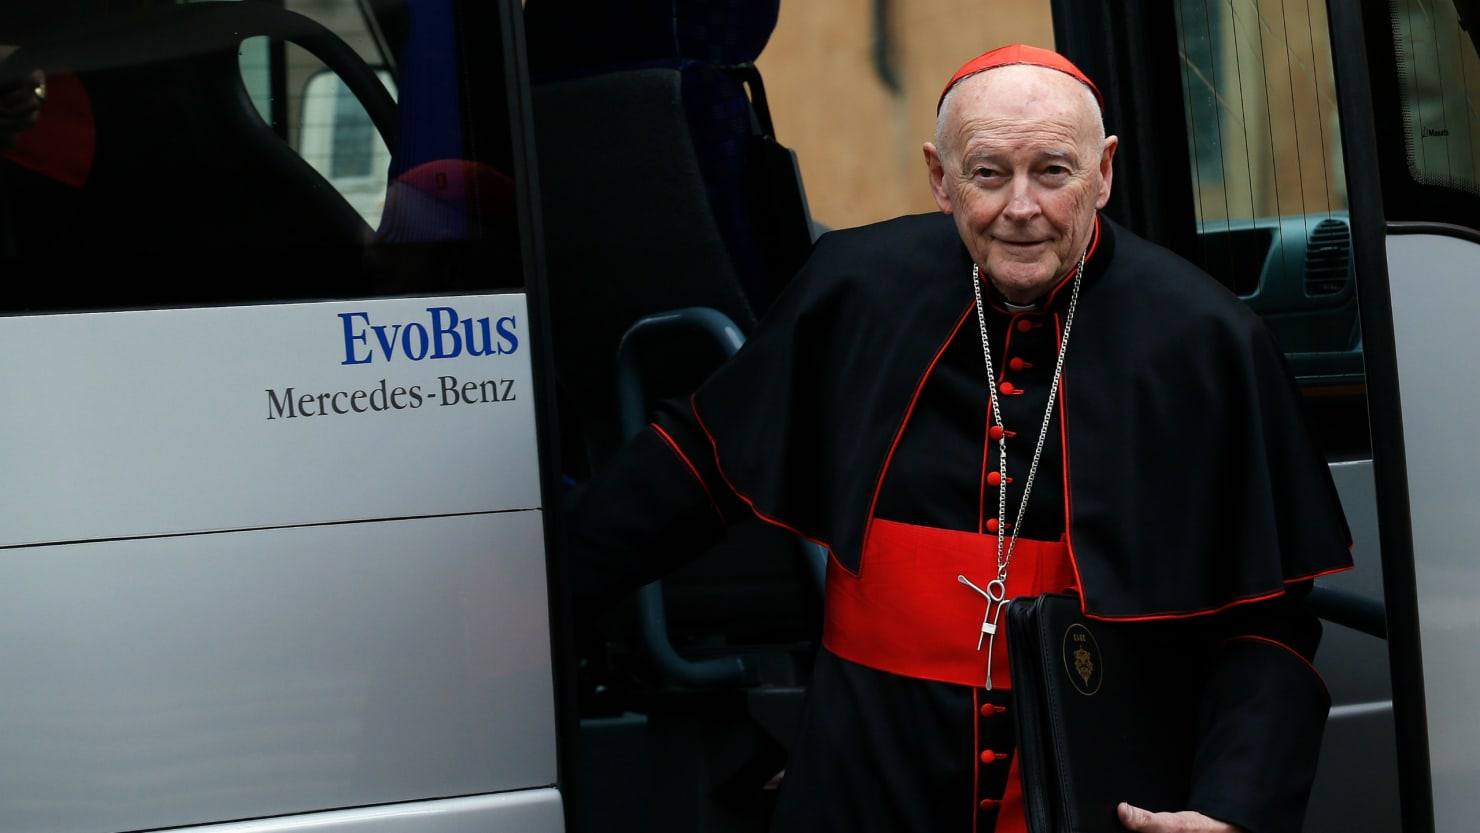 Cardinal McCarrick preyed on young boys